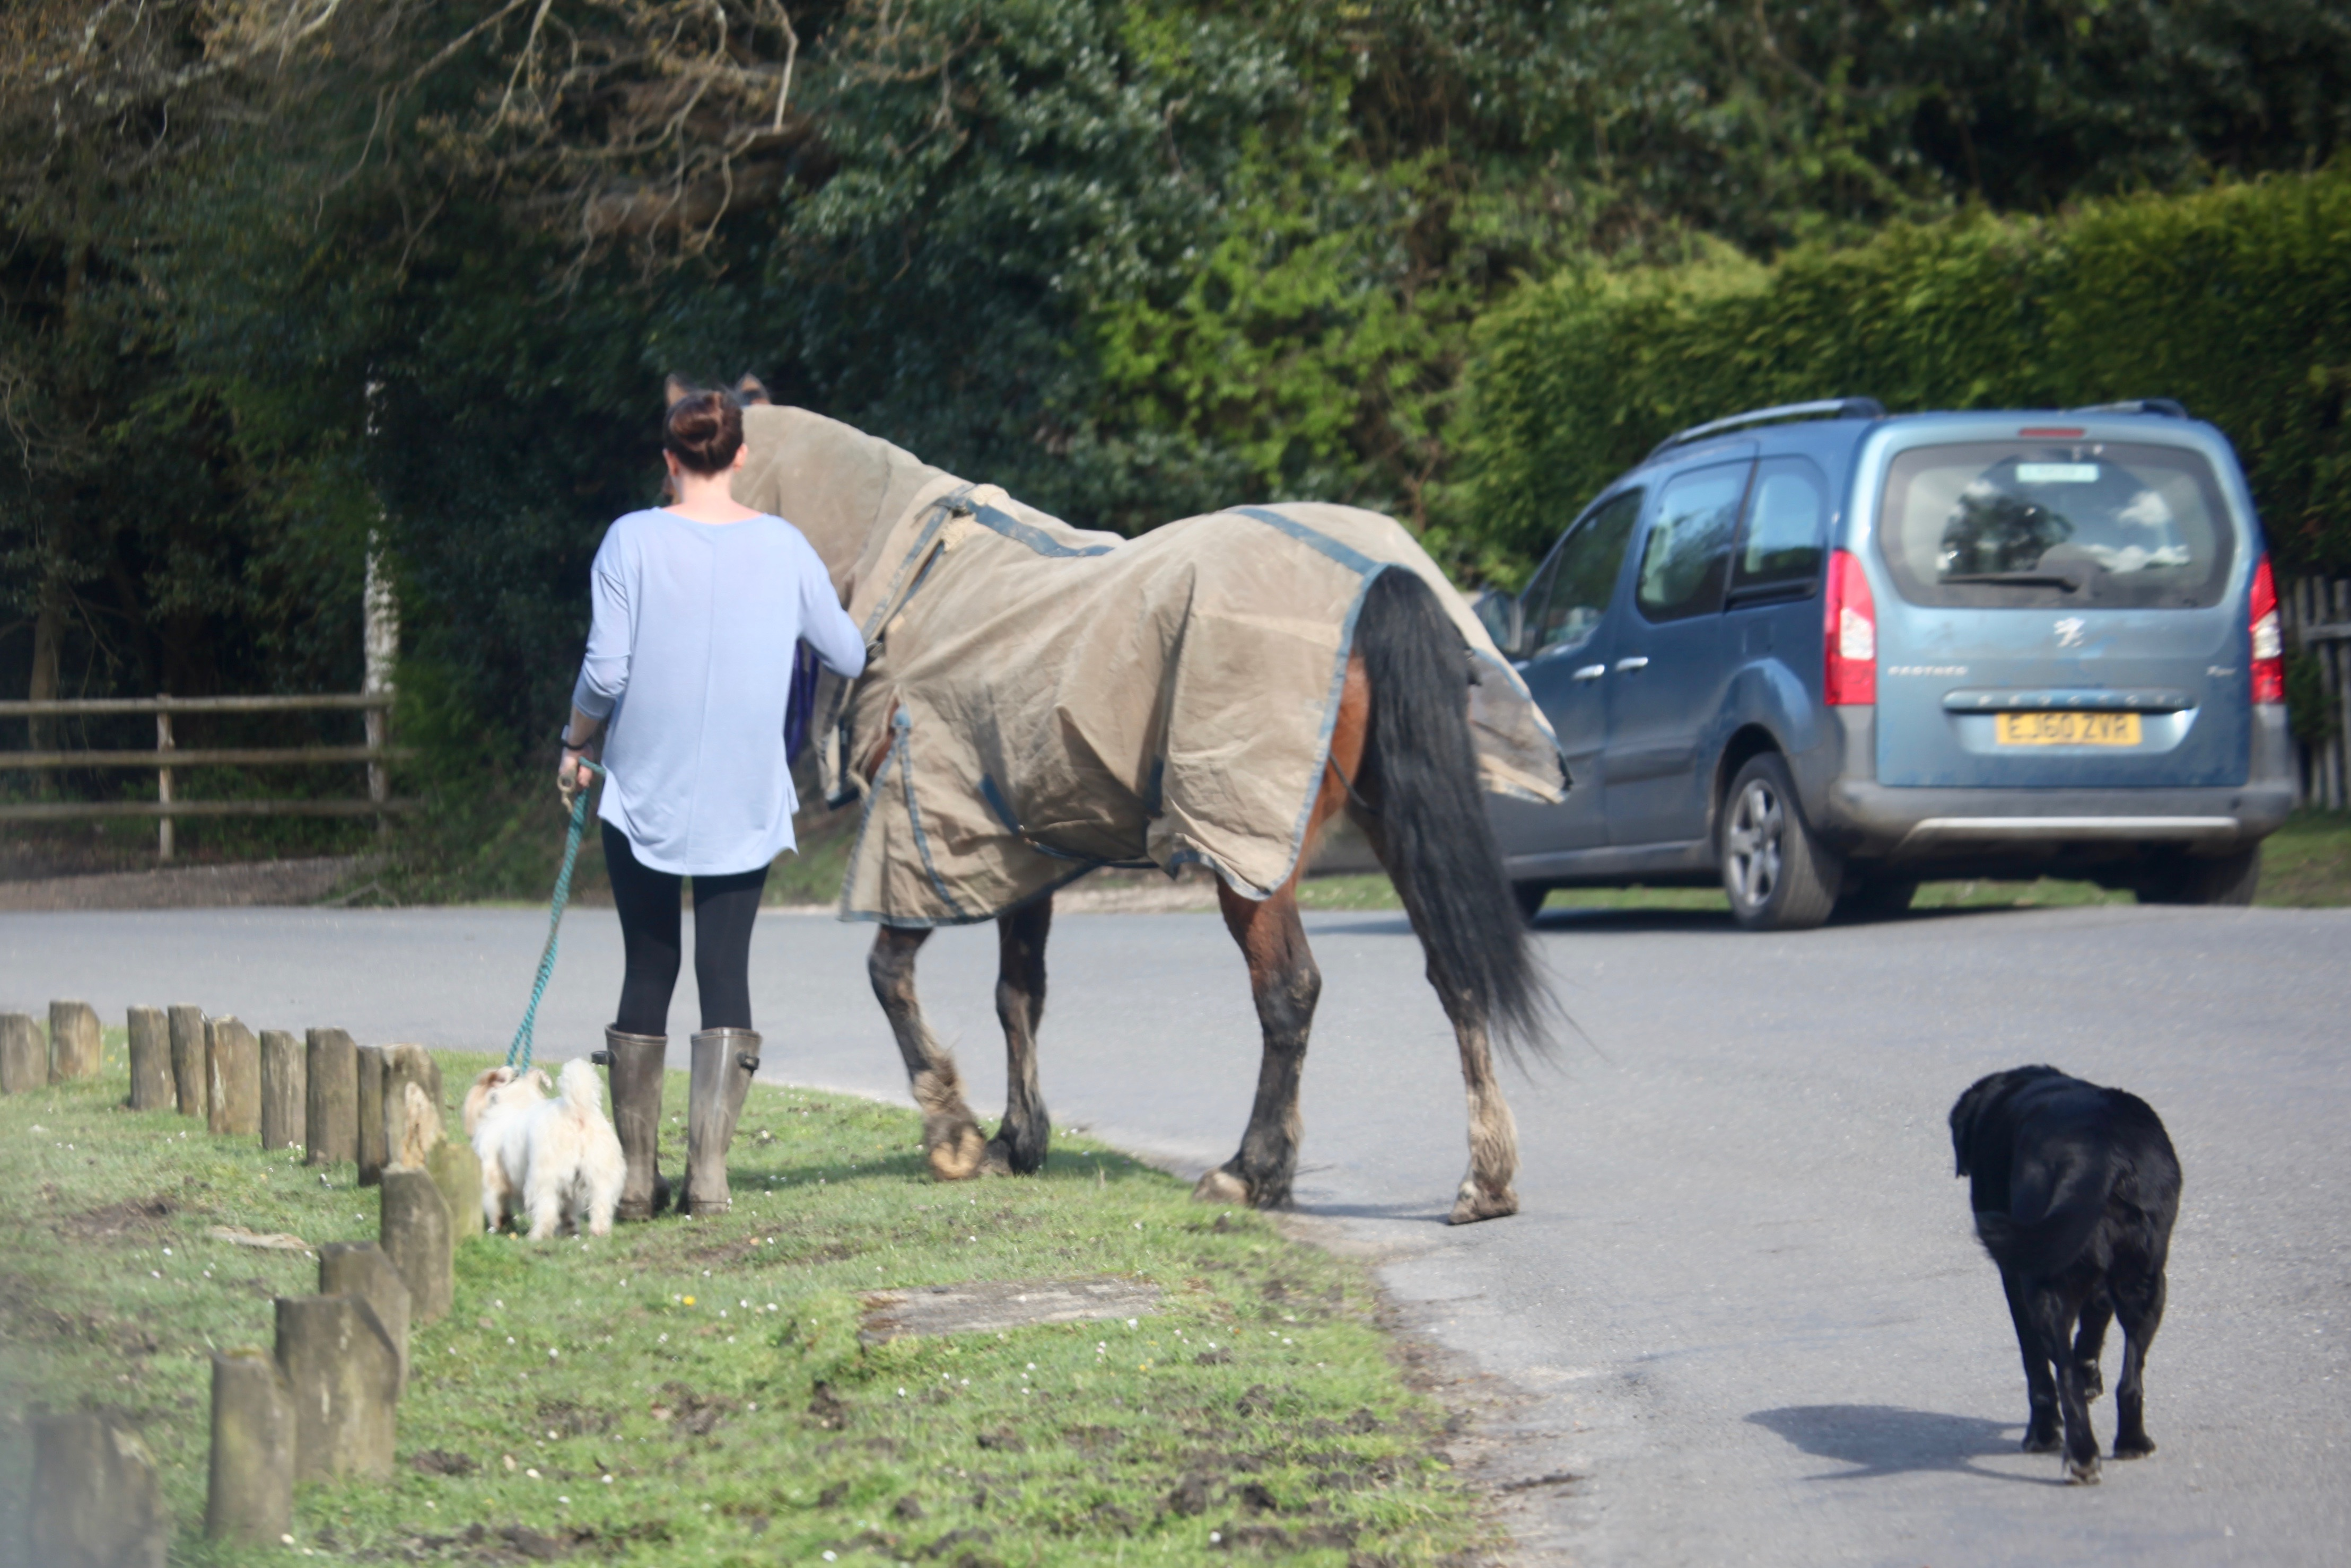 Dog following woman leading another and a horse